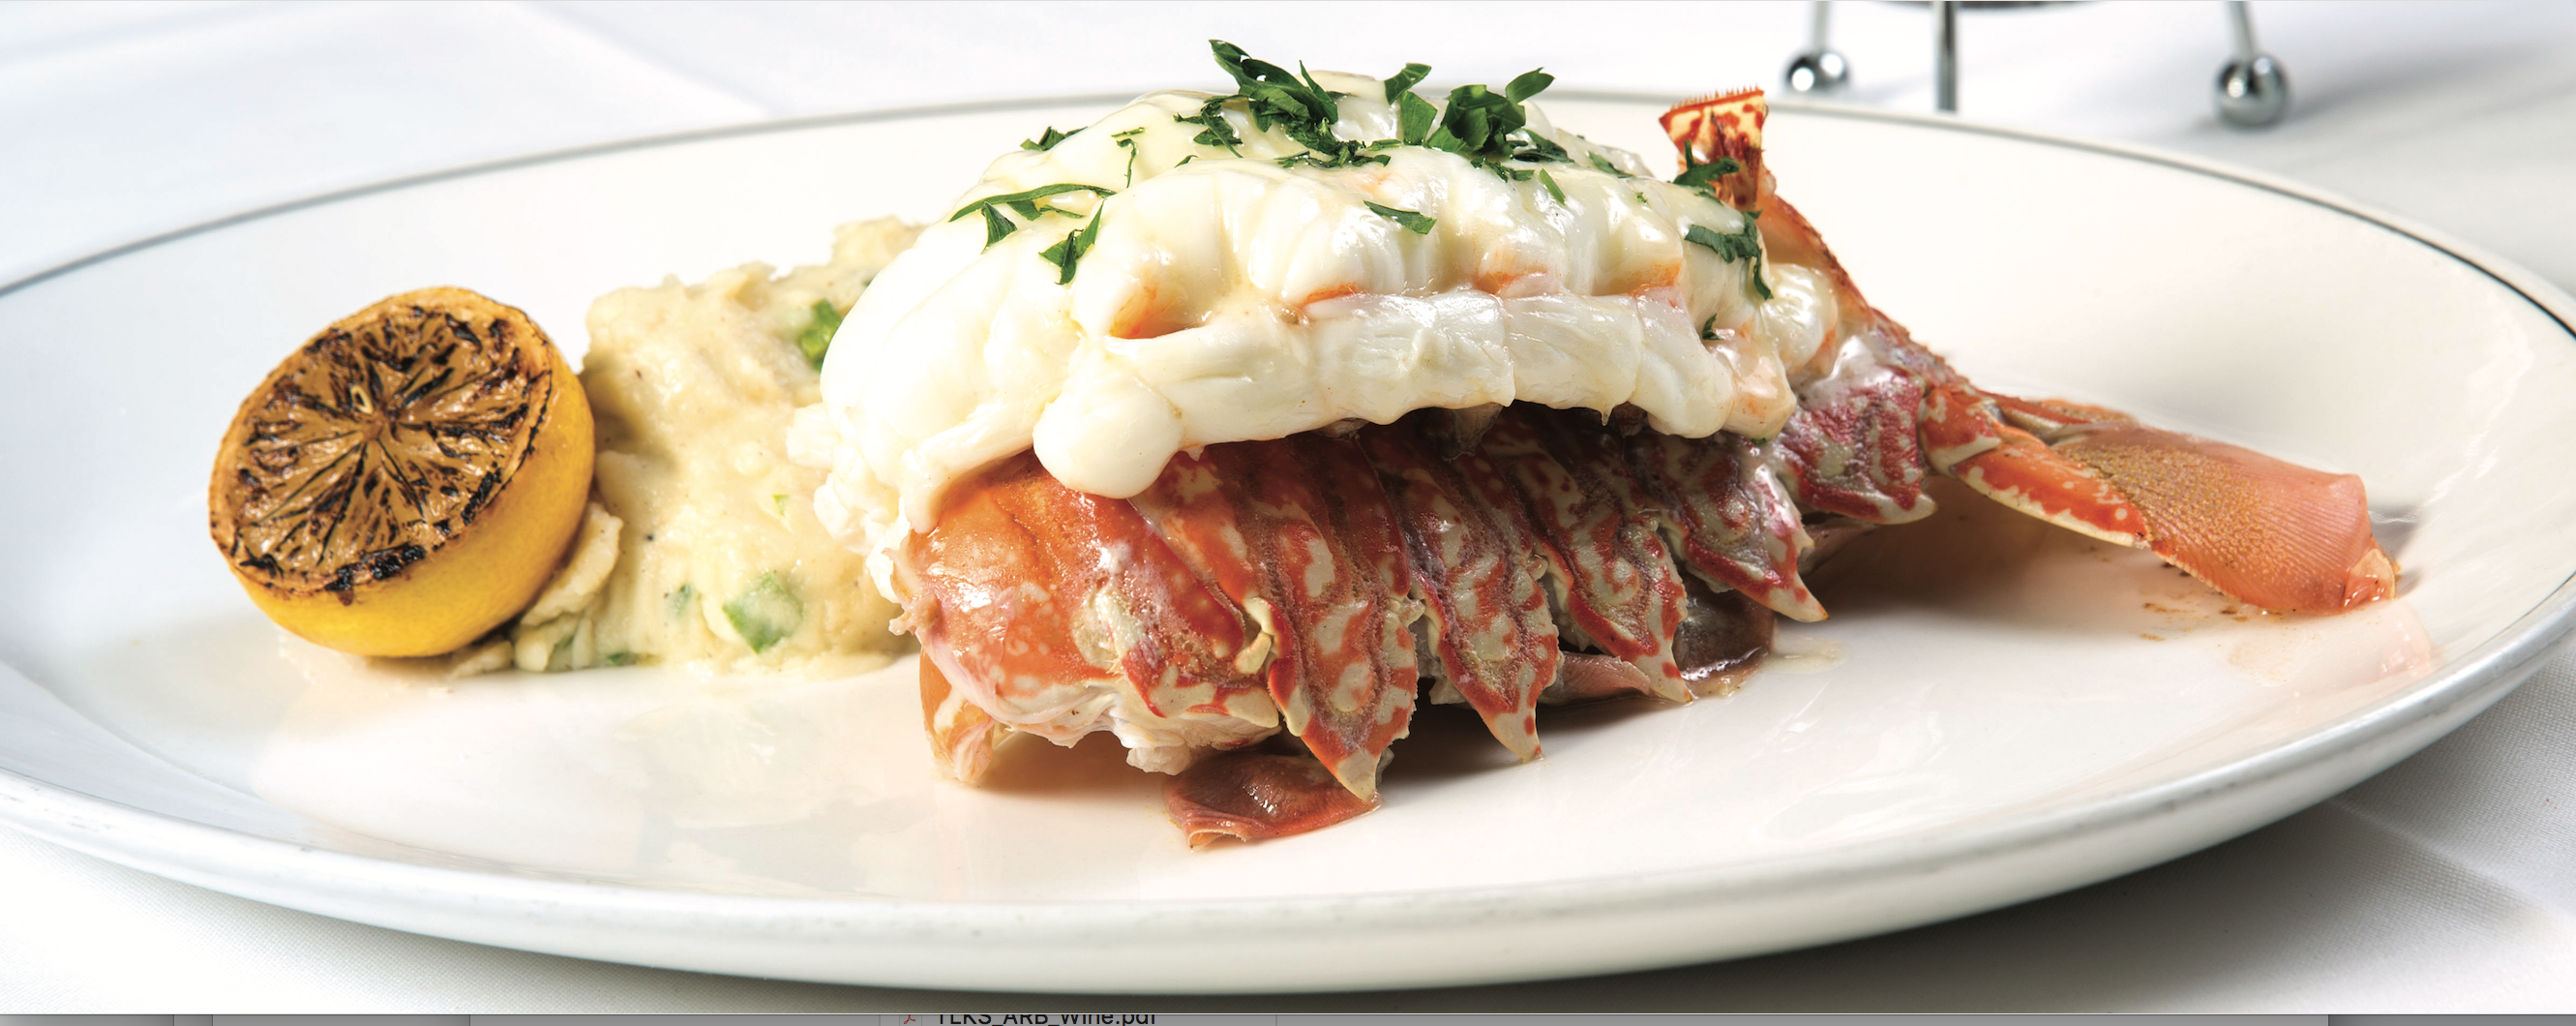 SOUTH AFRICAN LOBSTER TAIL renowned worldwide for its sweetness and served with parmesan mashed potatoes. Garnished with a lemon.